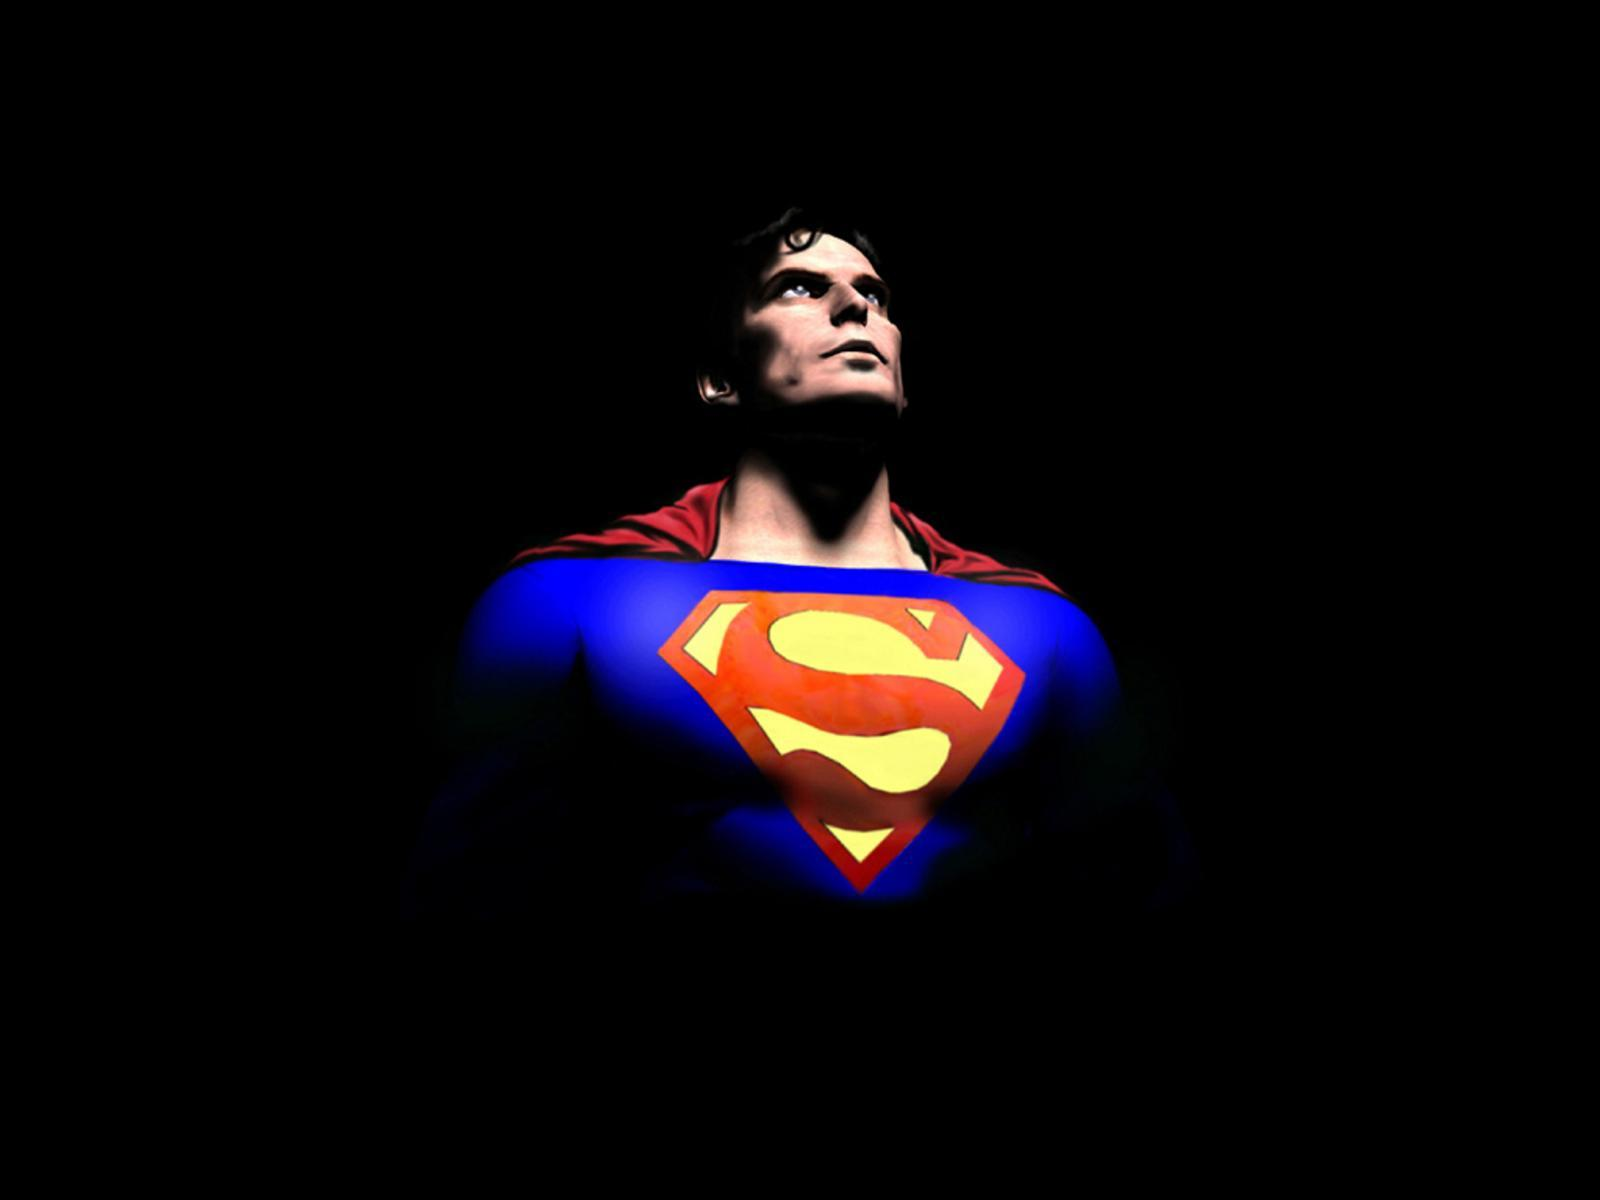 hd superman wallpapers - wallpaper cave